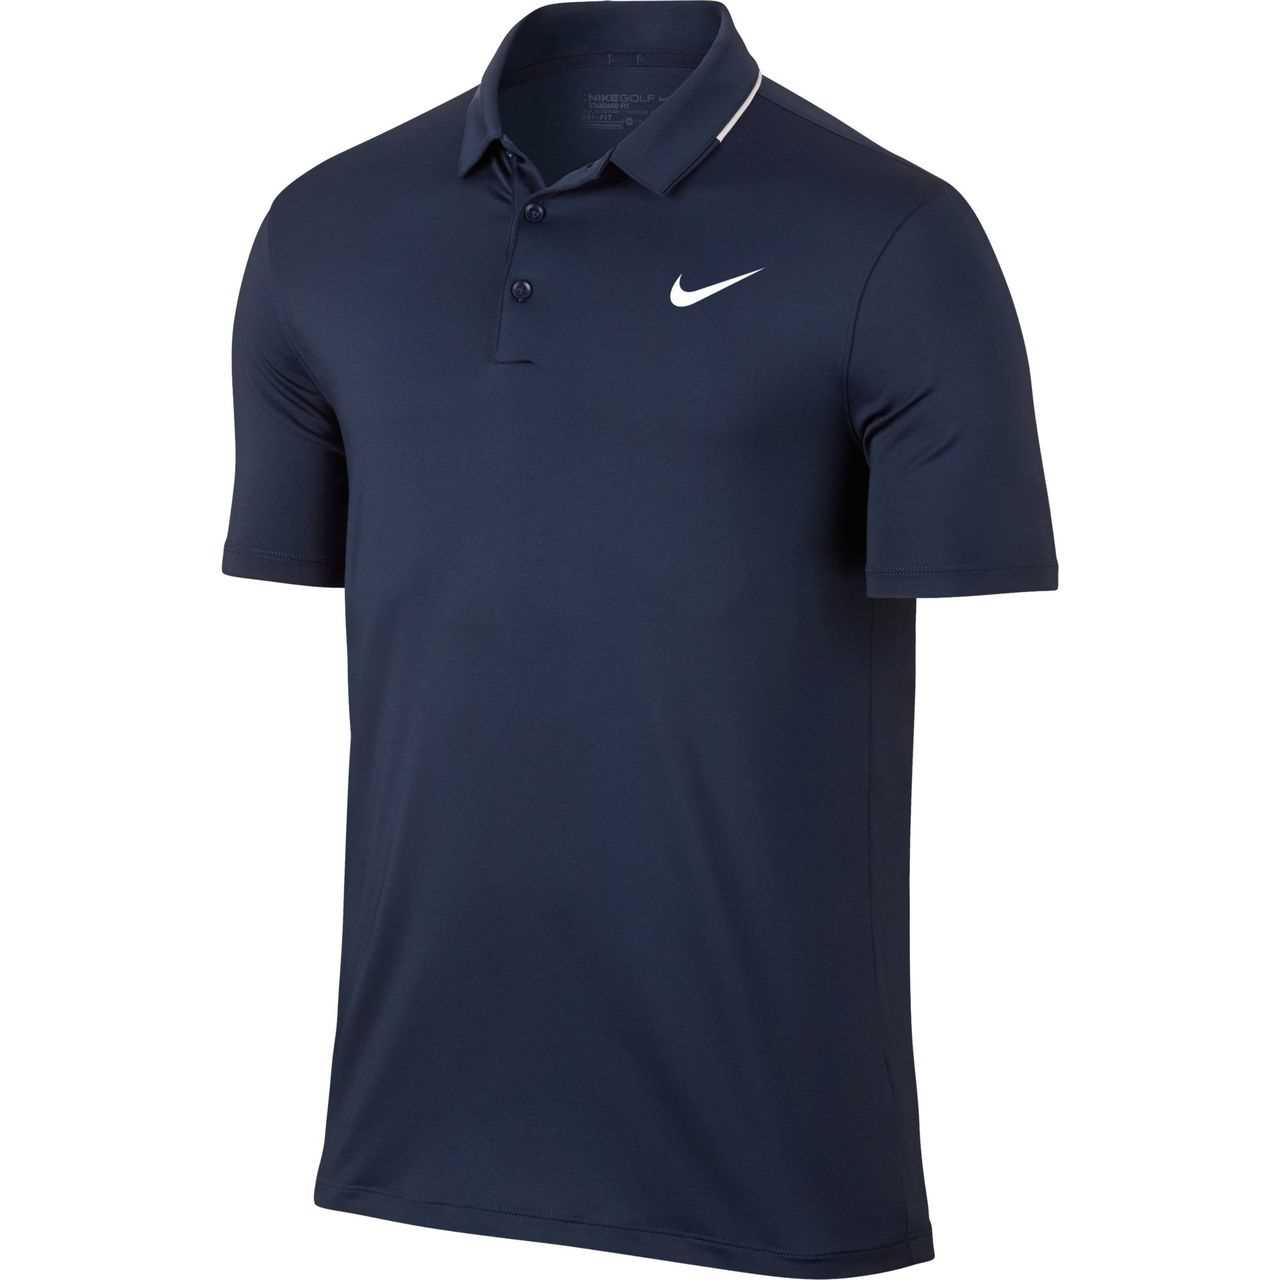 1bac56ce4 Nike Dry Solid Men s Golf Polo - Navy